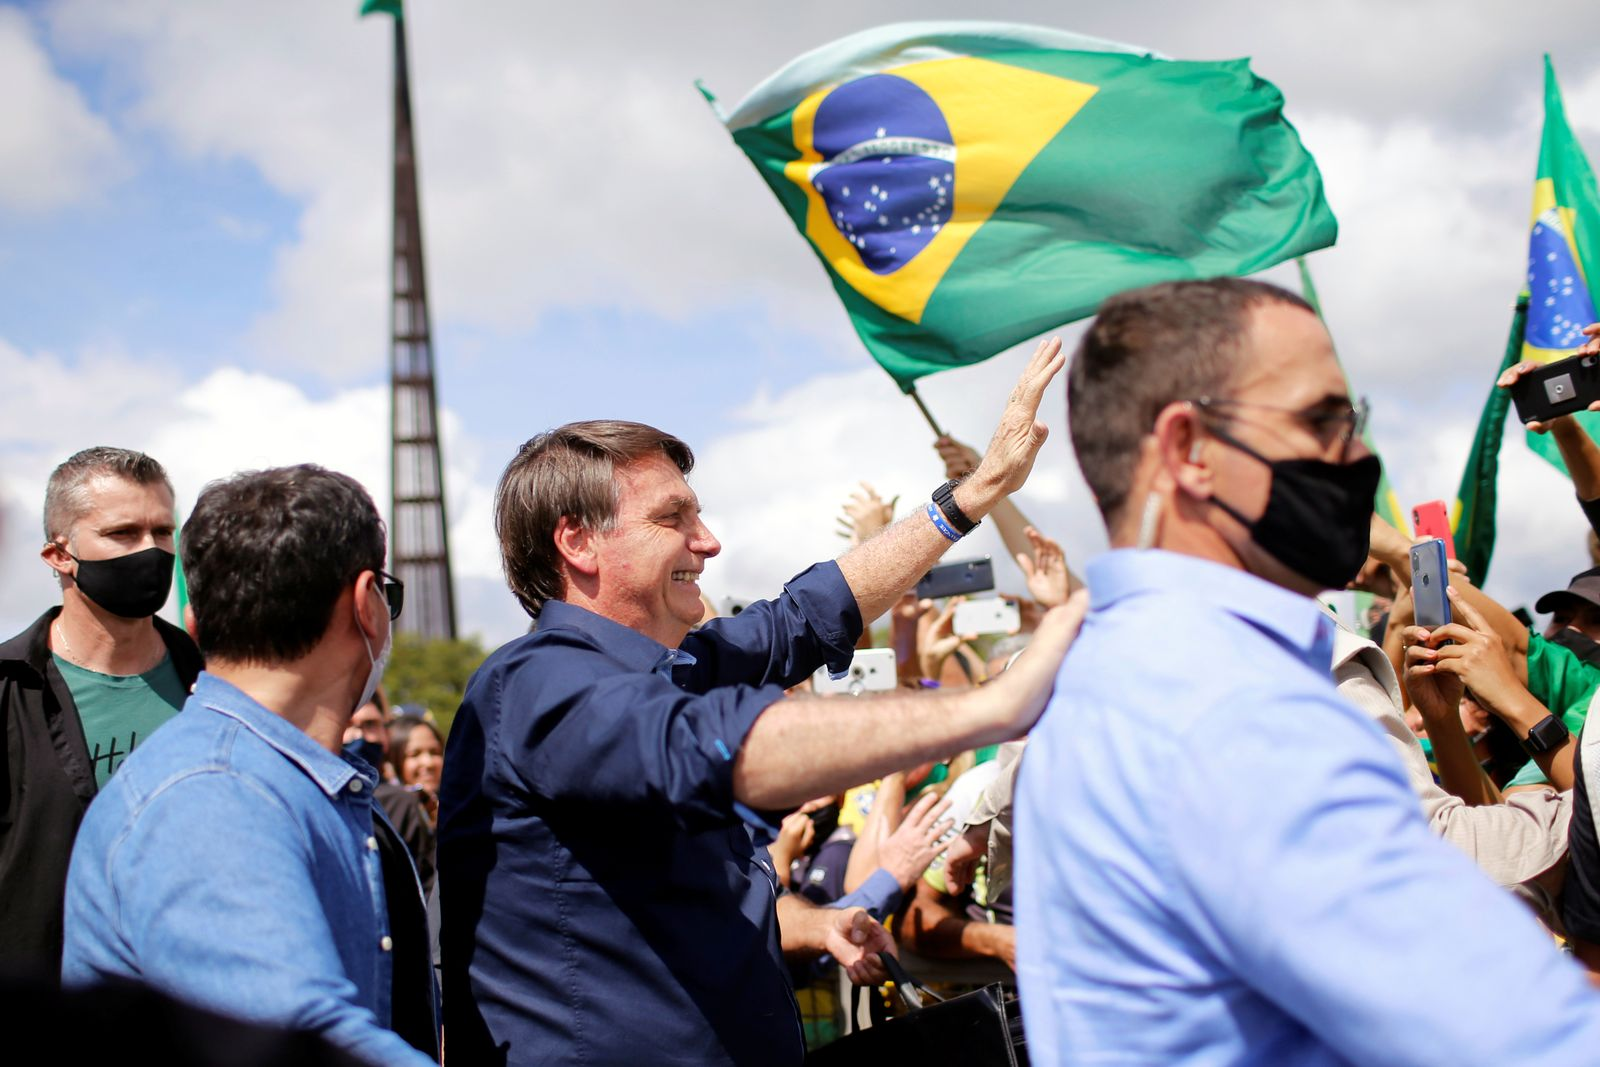 Brazil's President Jair Bolsonaro greets supporters during a protest in his favor in front of the Planalto Palace, amid the coronavirus disease (COVID-19) outbreak, in Brasilia